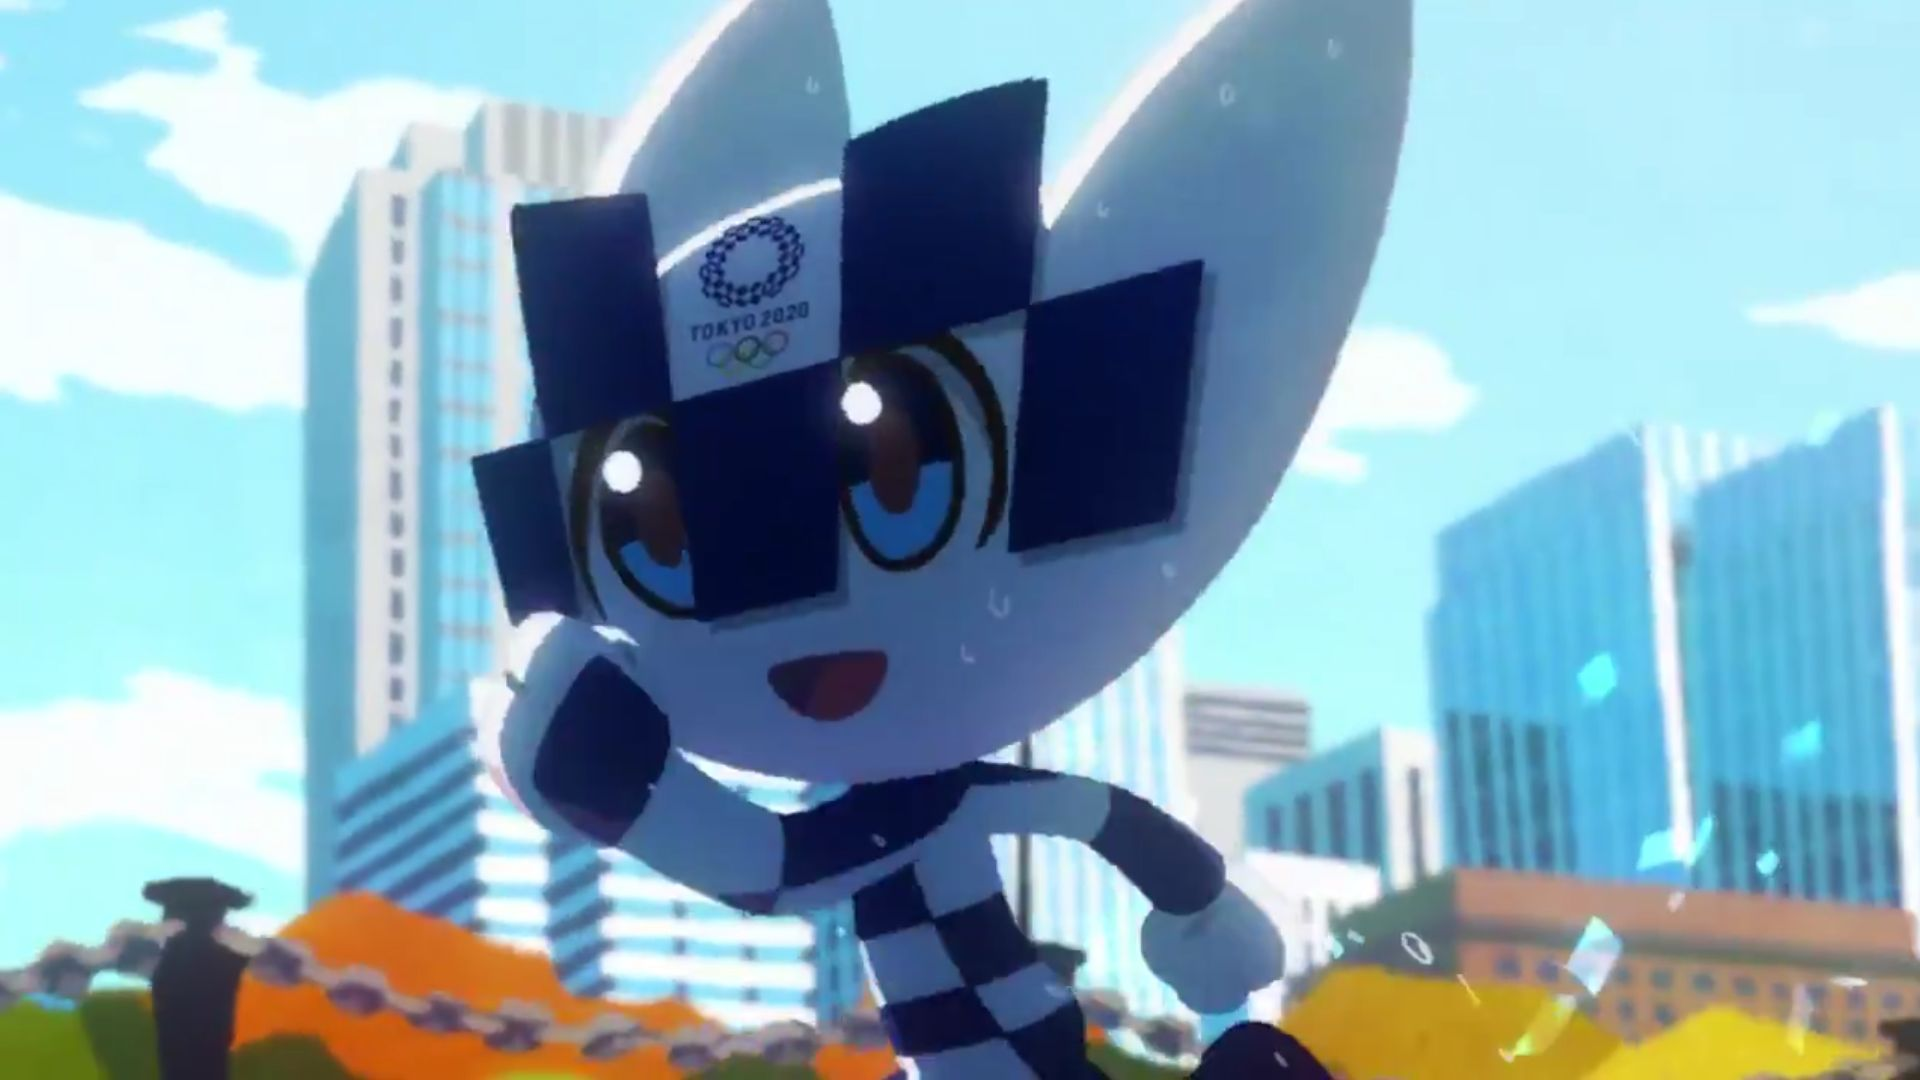 Best Anime To Watch 2020 Japan Begins Marketing for the 2020 Olympics with Cool Anime Video